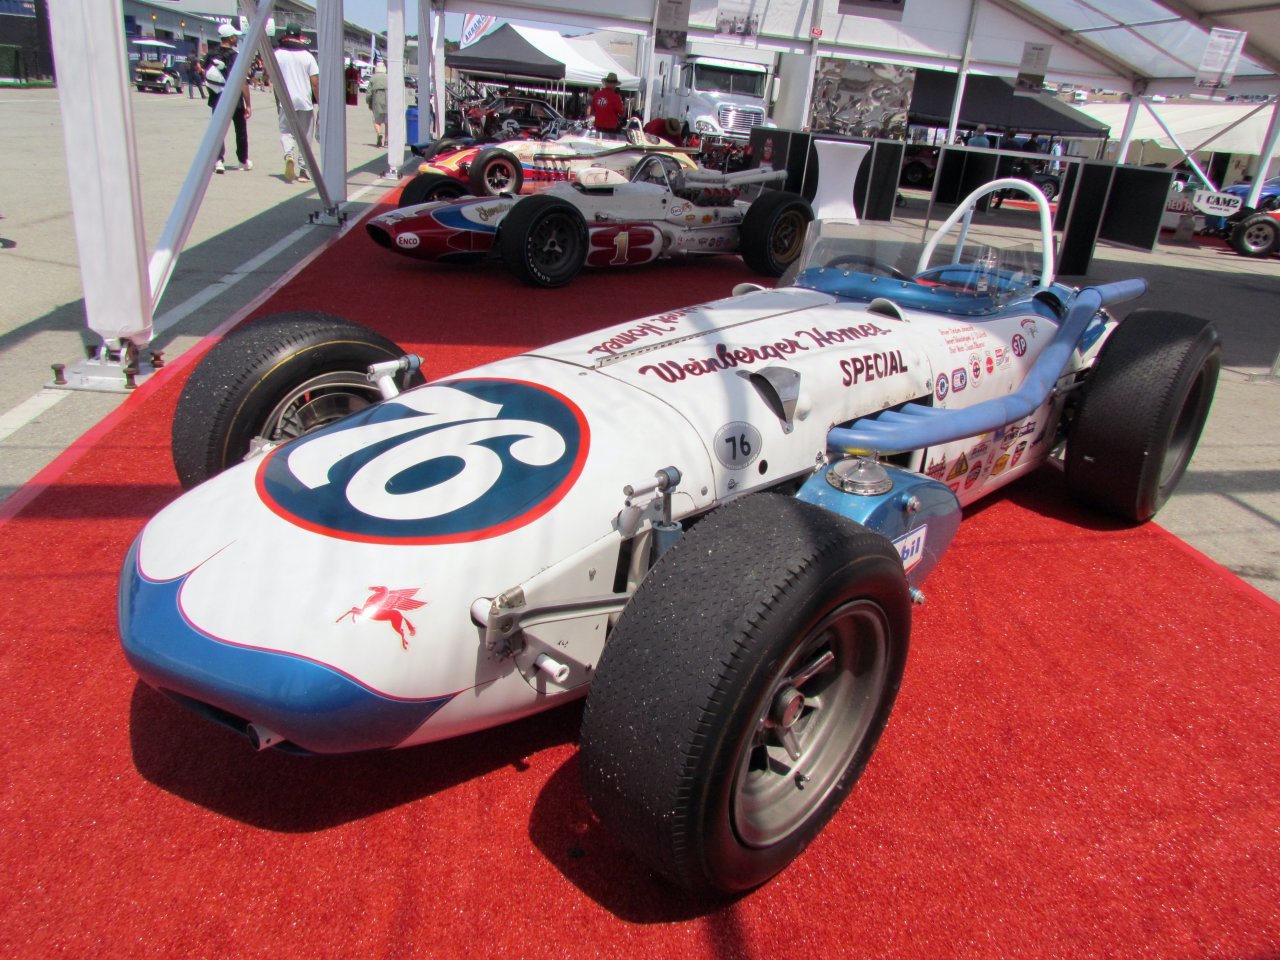 Indy cars, Vintage Indy cars display variety at Monterey, ClassicCars.com Journal